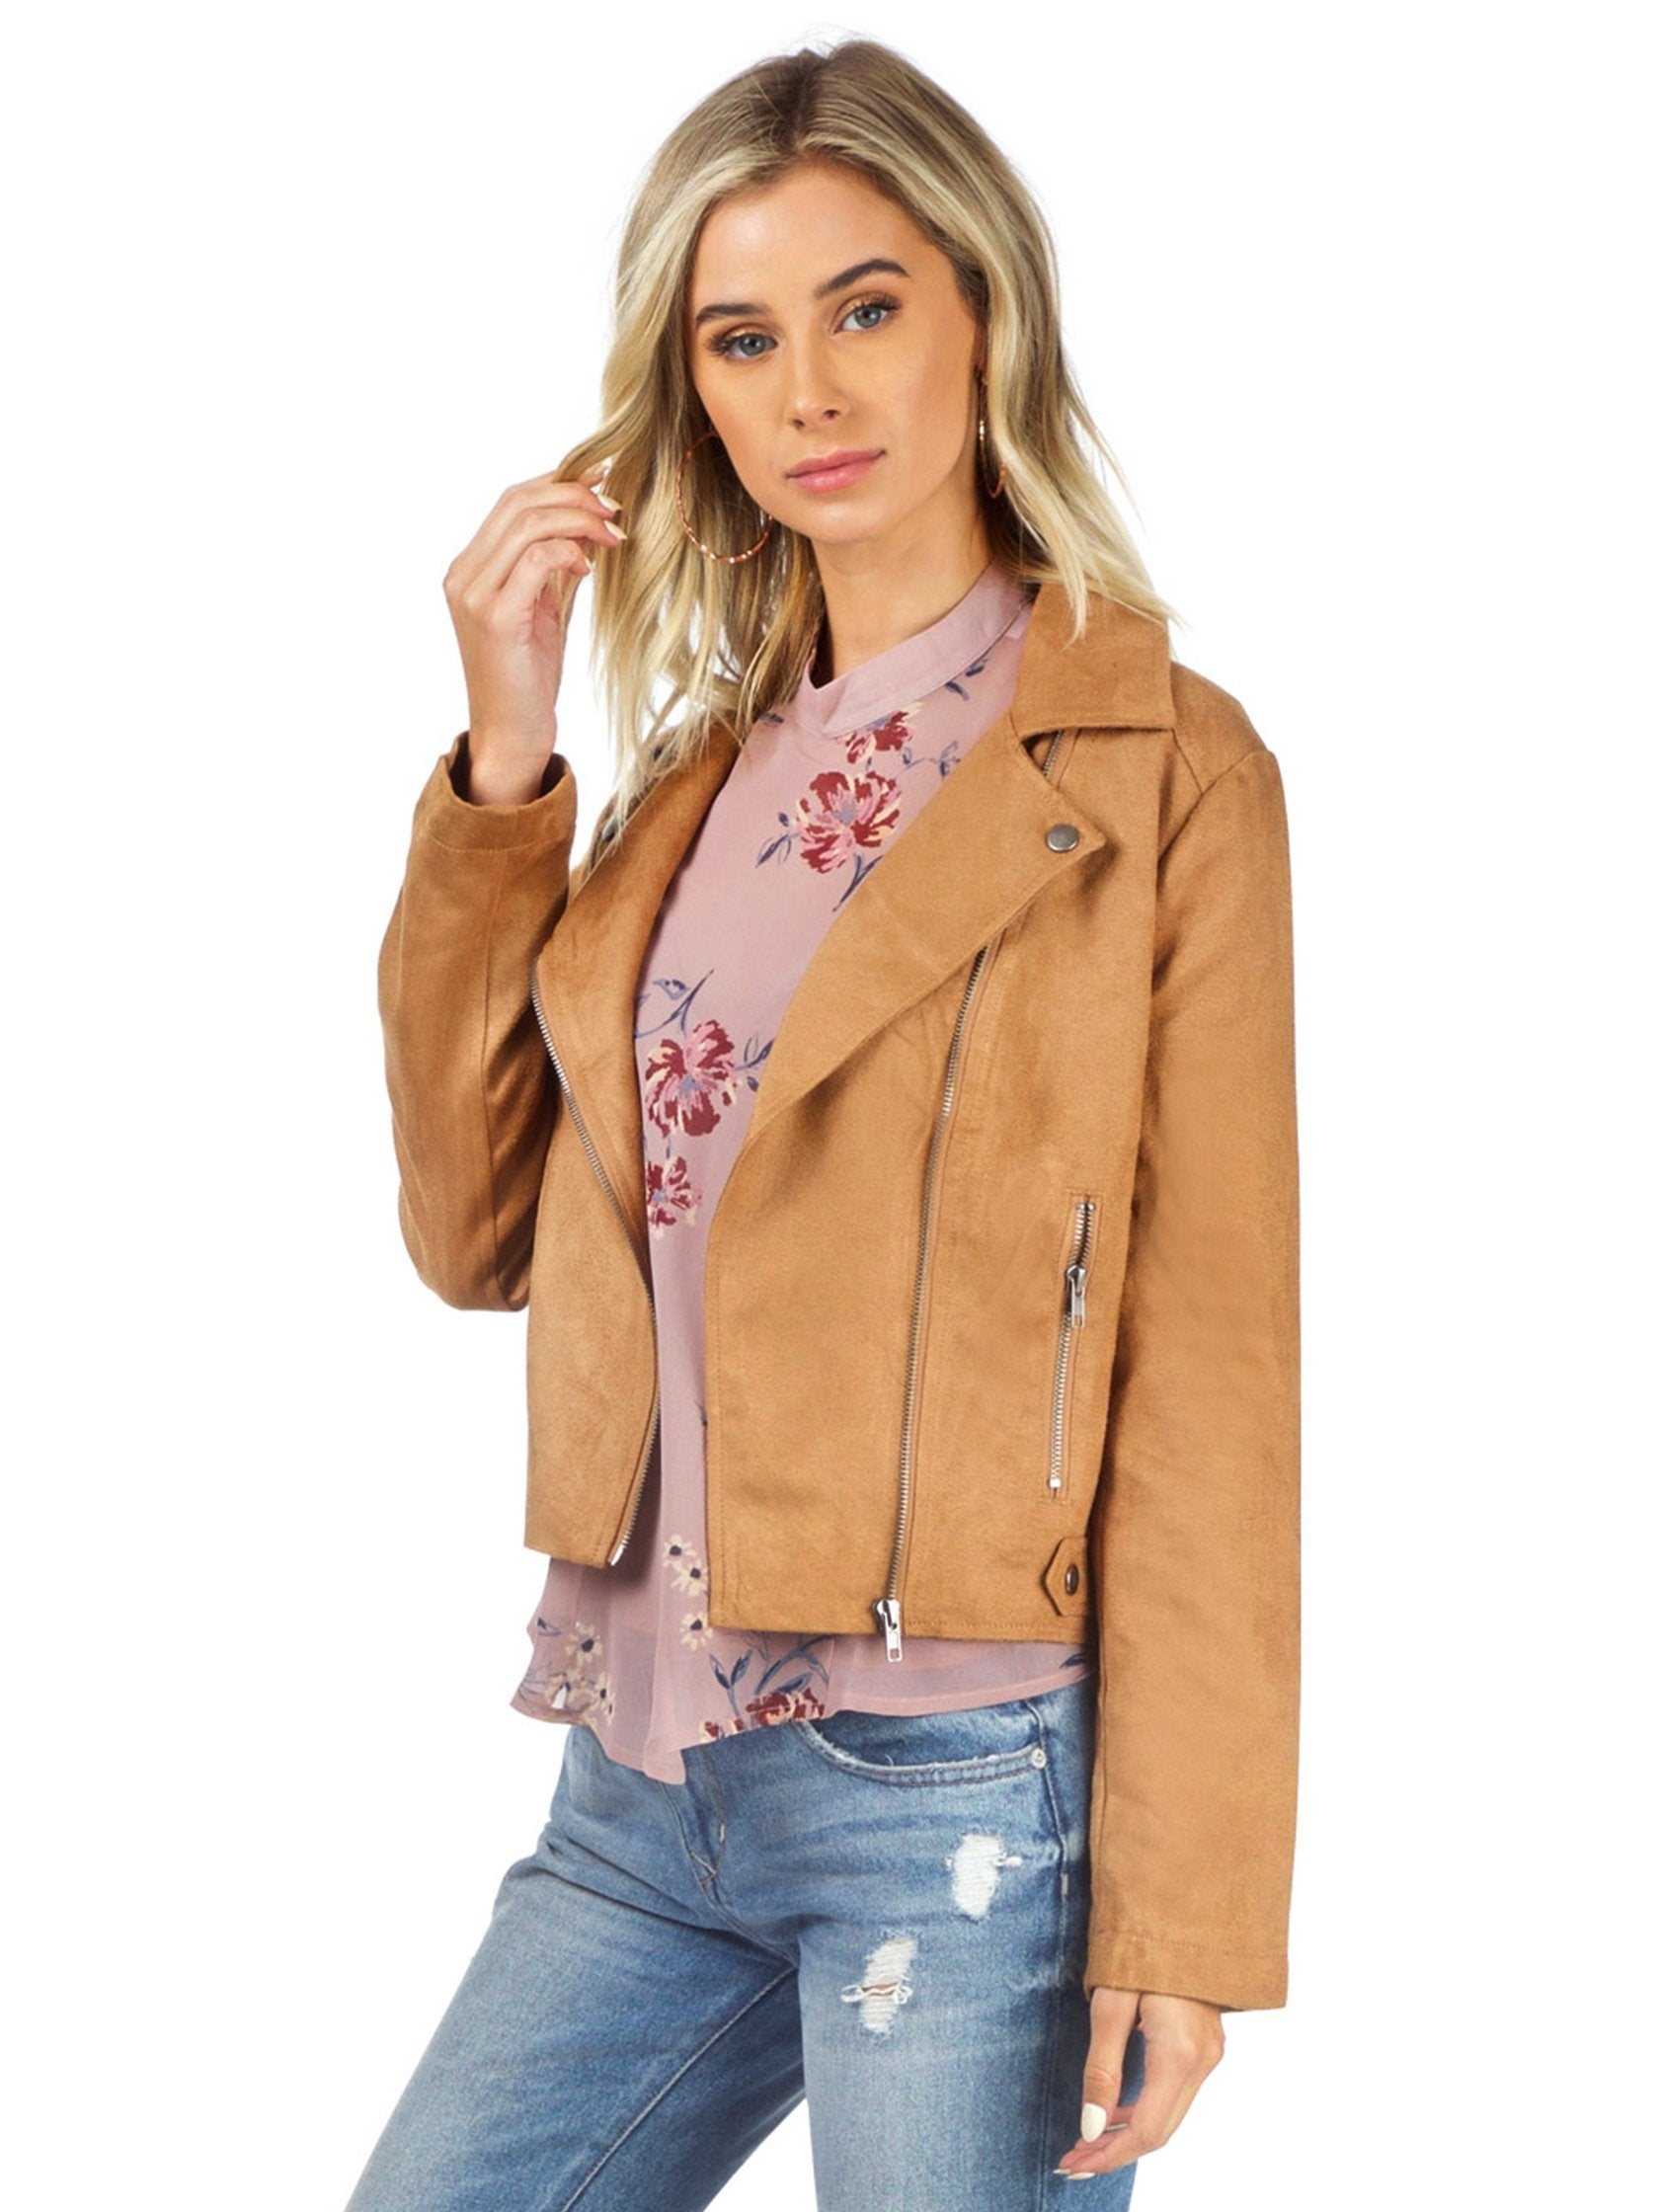 Women wearing a jacket rental from BB Dakota called Jack By Bb Dakota Johanness Woven Faux Suede Jacket